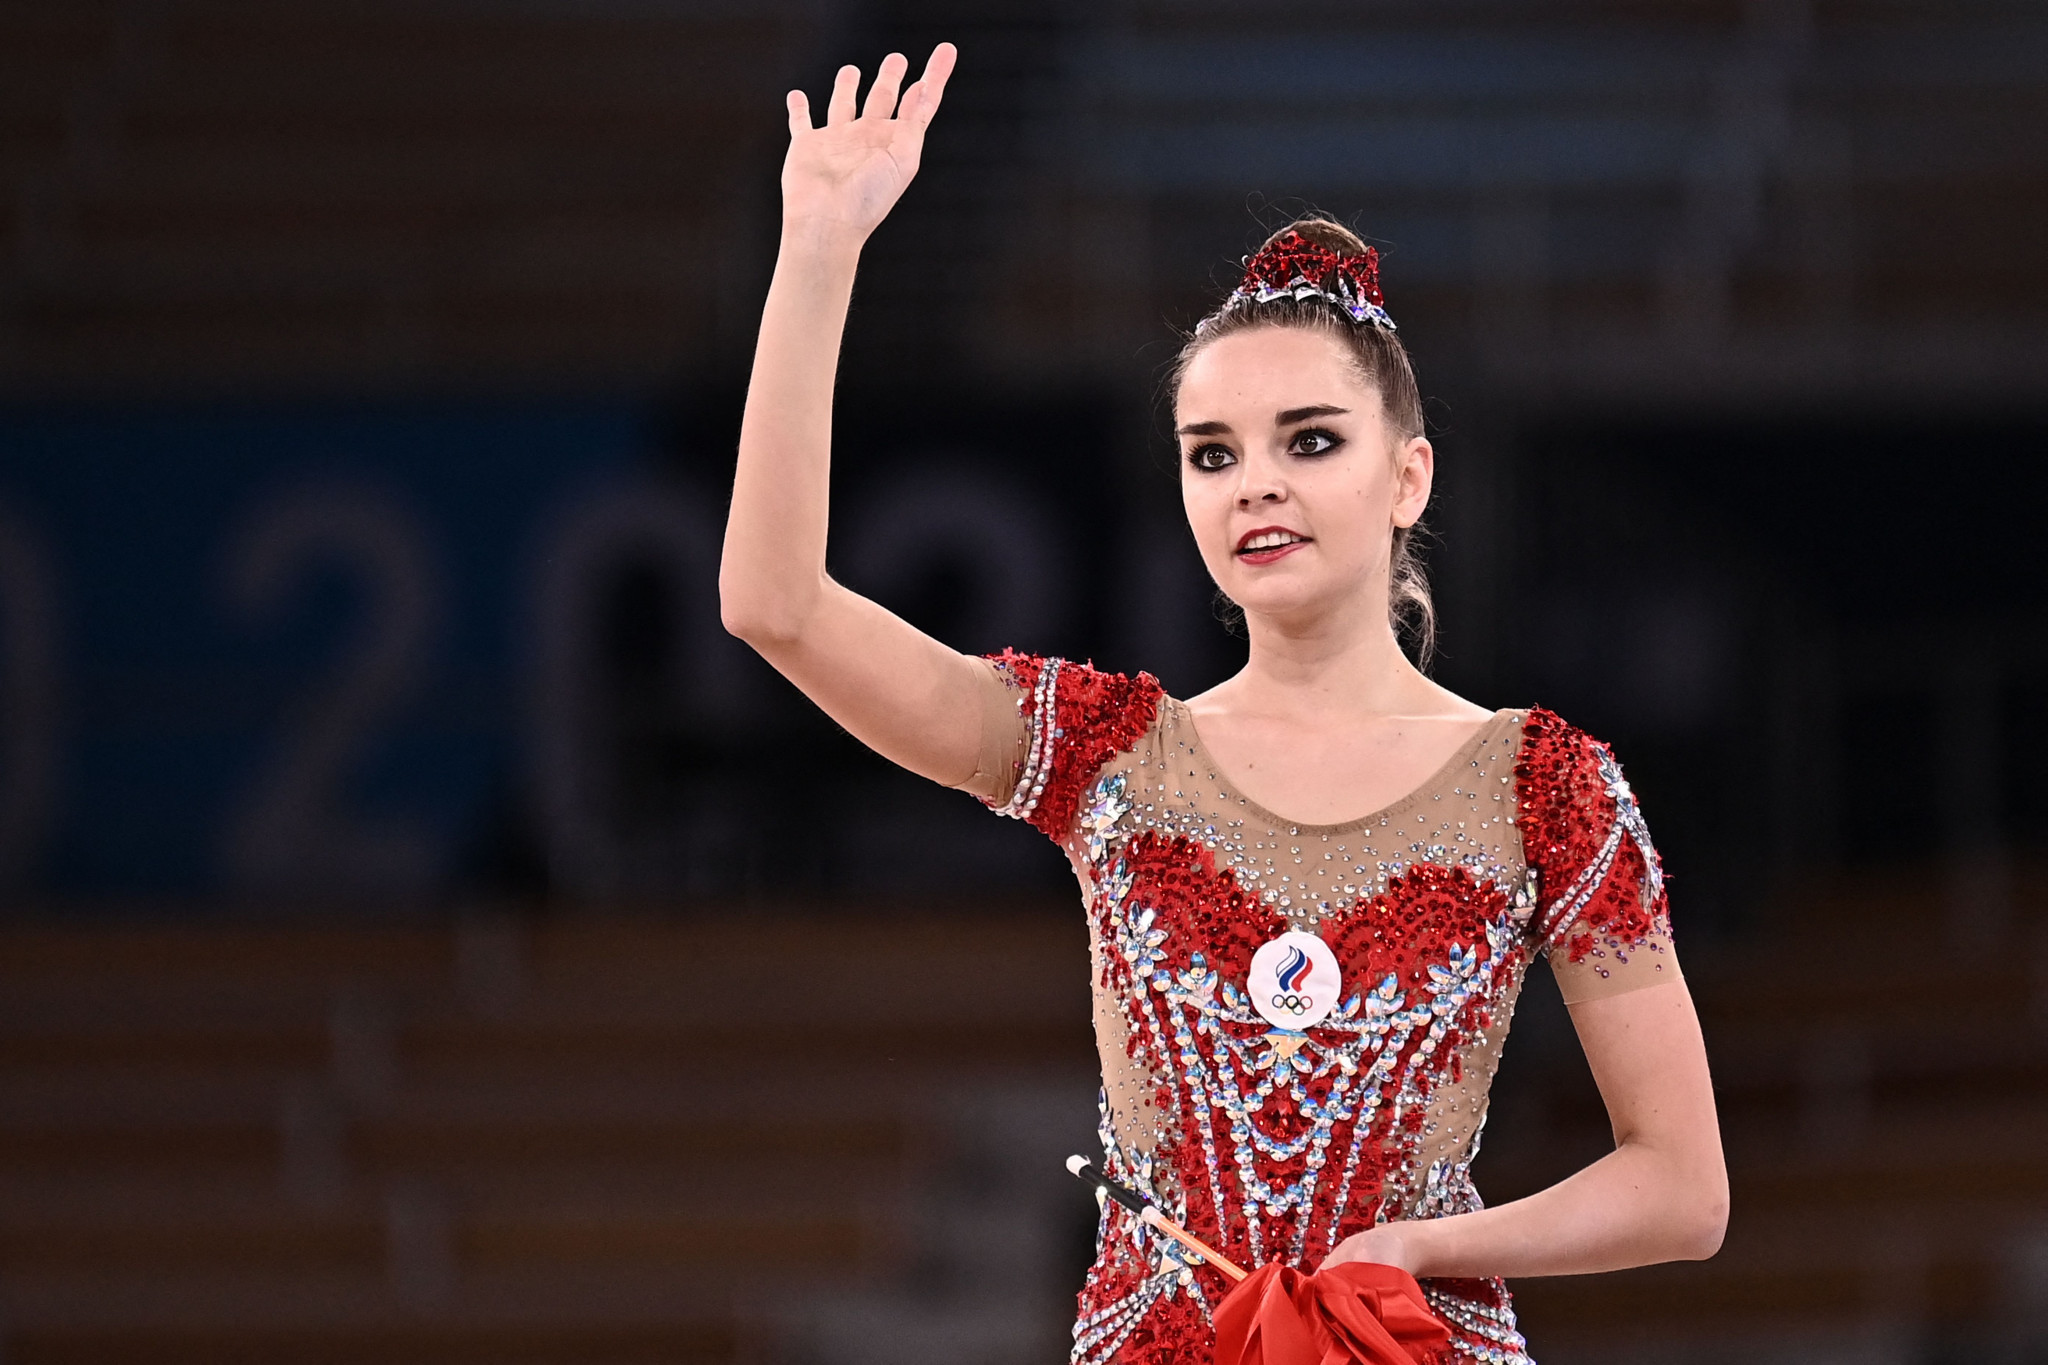 Dina Averina had to settle for a surprise silver medal ©Getty Images